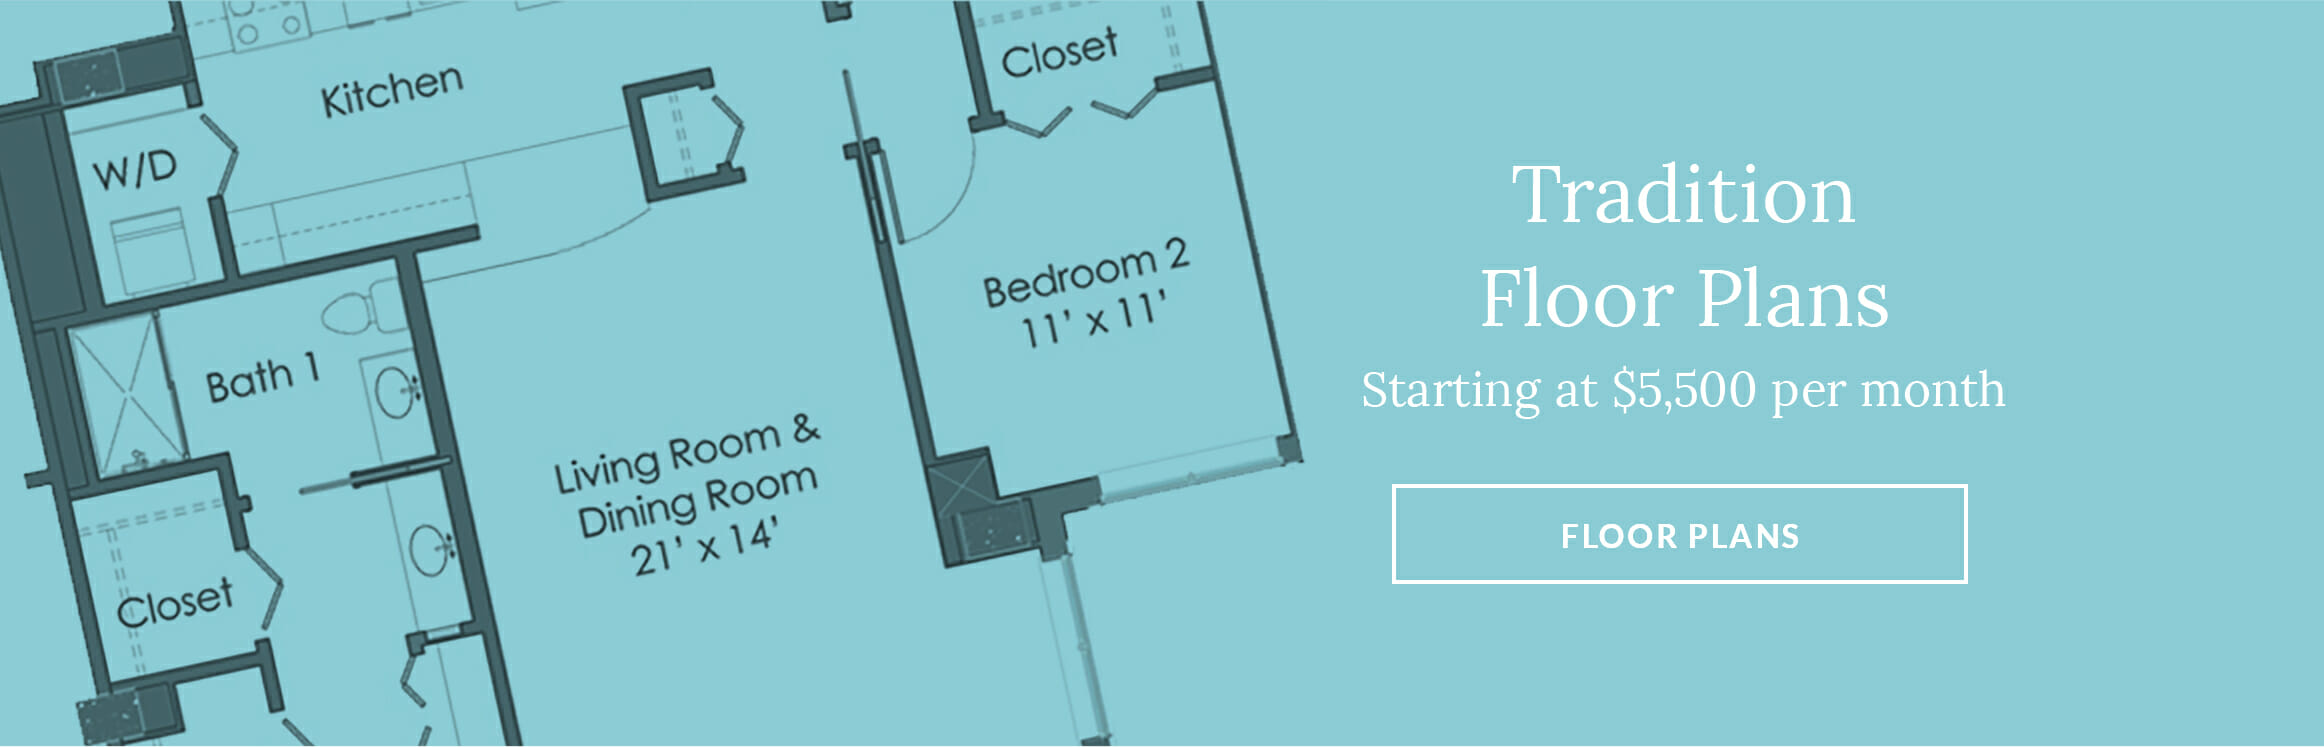 Tradition Floor Plans - Starting at $5500 per month